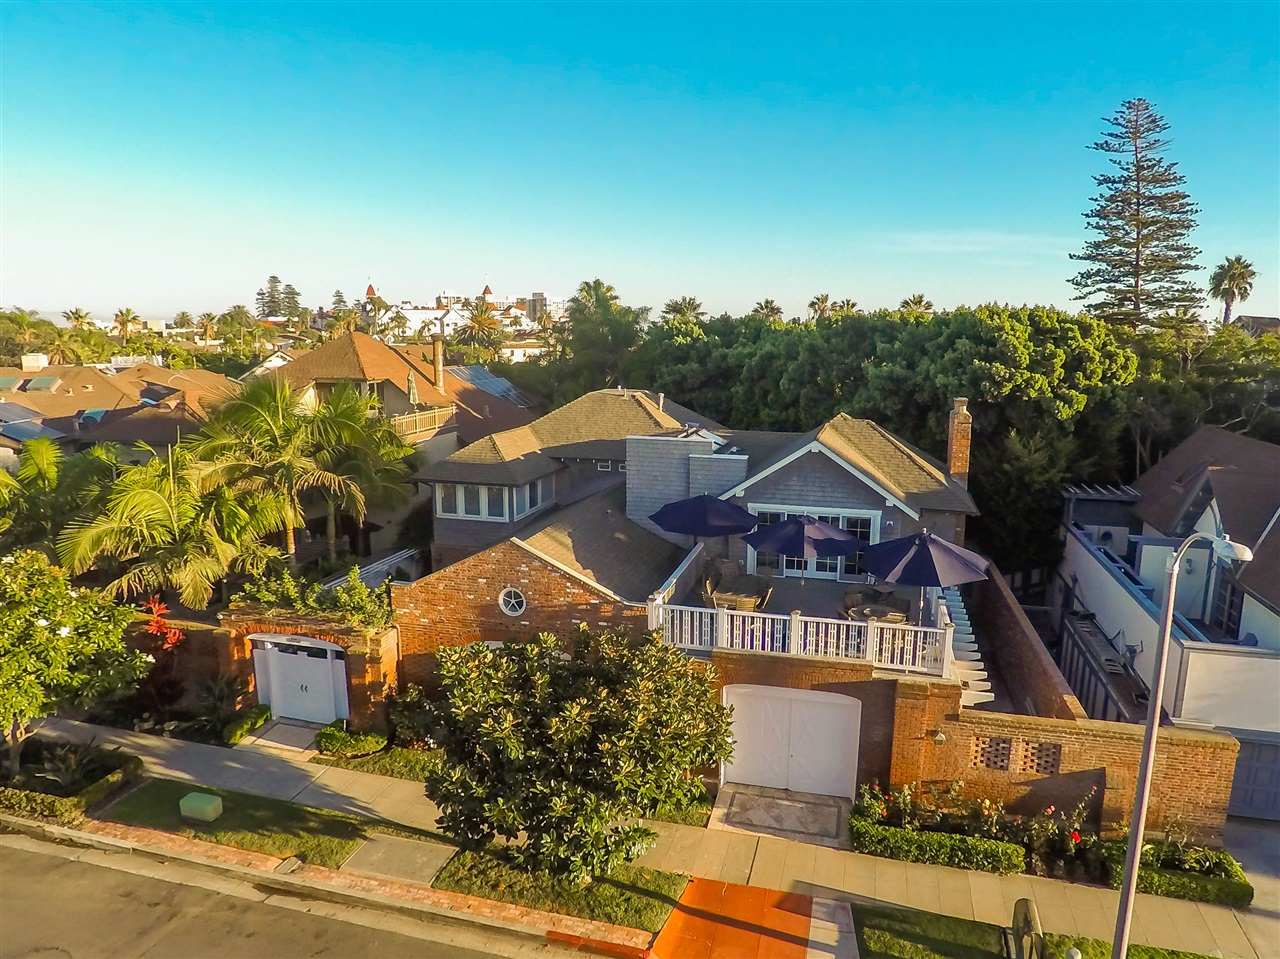 Main Photo: 1030 LOMA AVENUE CORONADO | MLS 150054272 | GERRI-LYNN FIVES